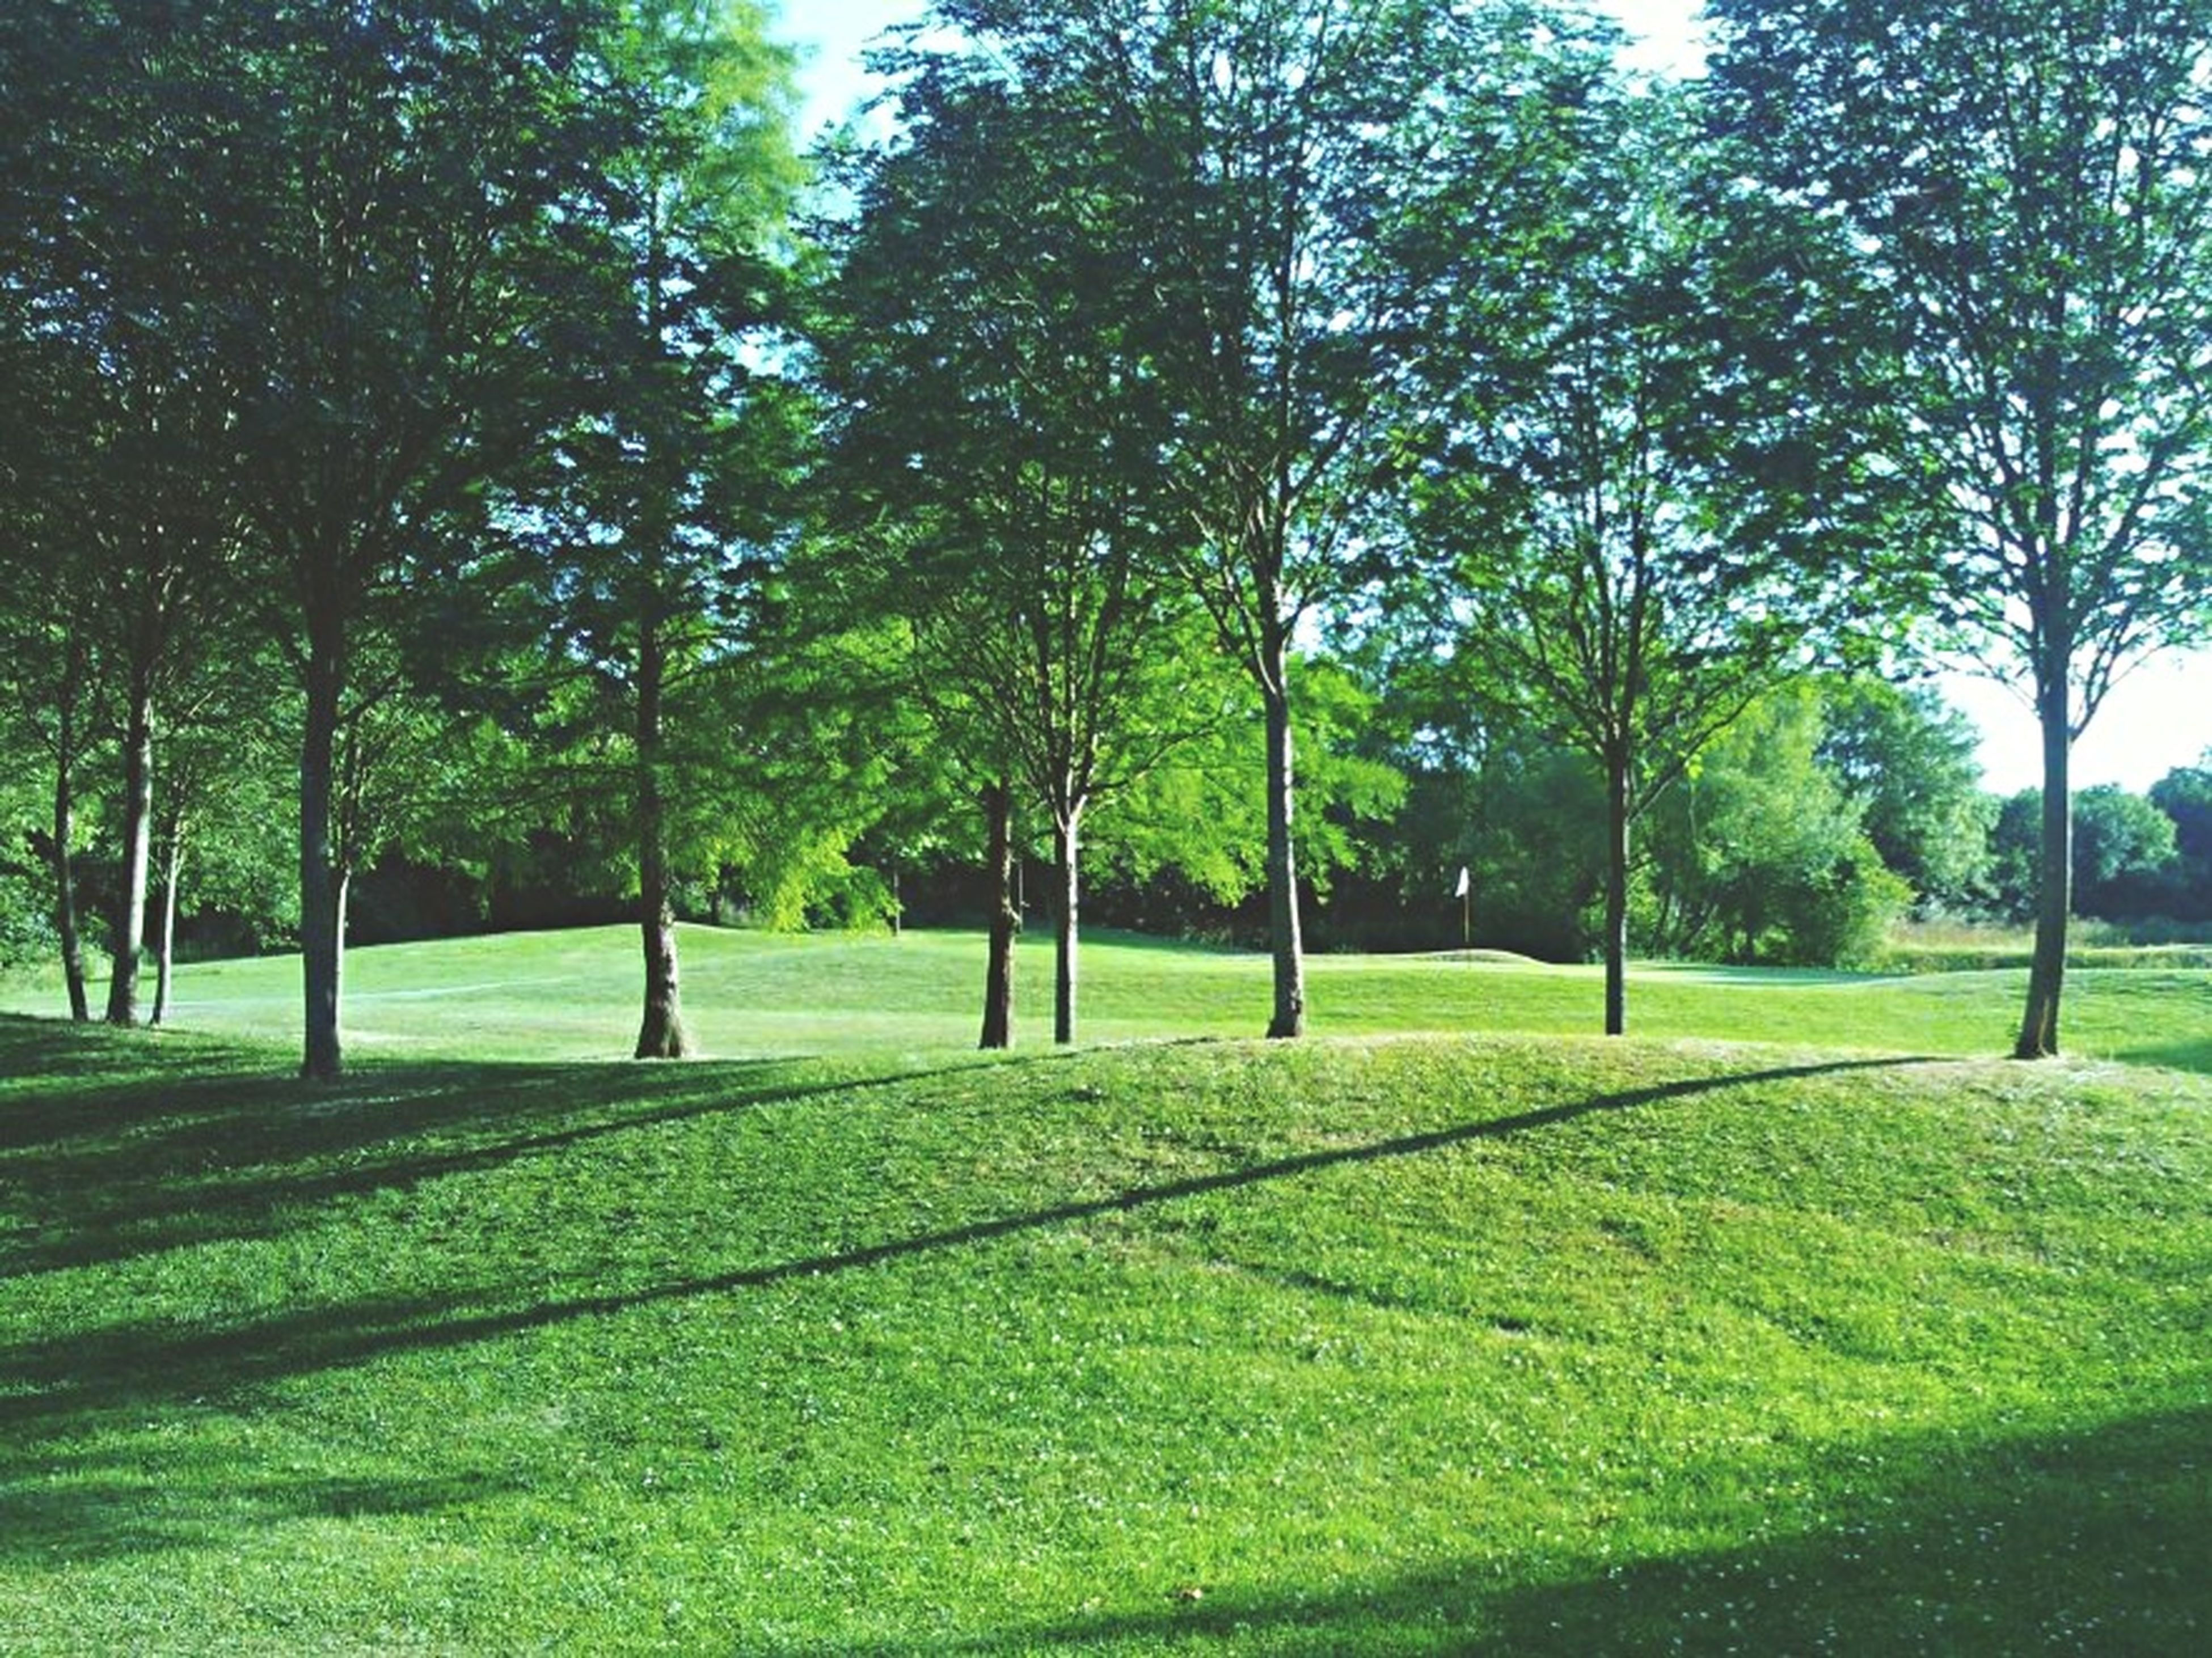 tree, grass, green color, tranquility, growth, tree trunk, grassy, park - man made space, tranquil scene, nature, shadow, field, beauty in nature, landscape, scenics, park, lawn, branch, sunlight, sky